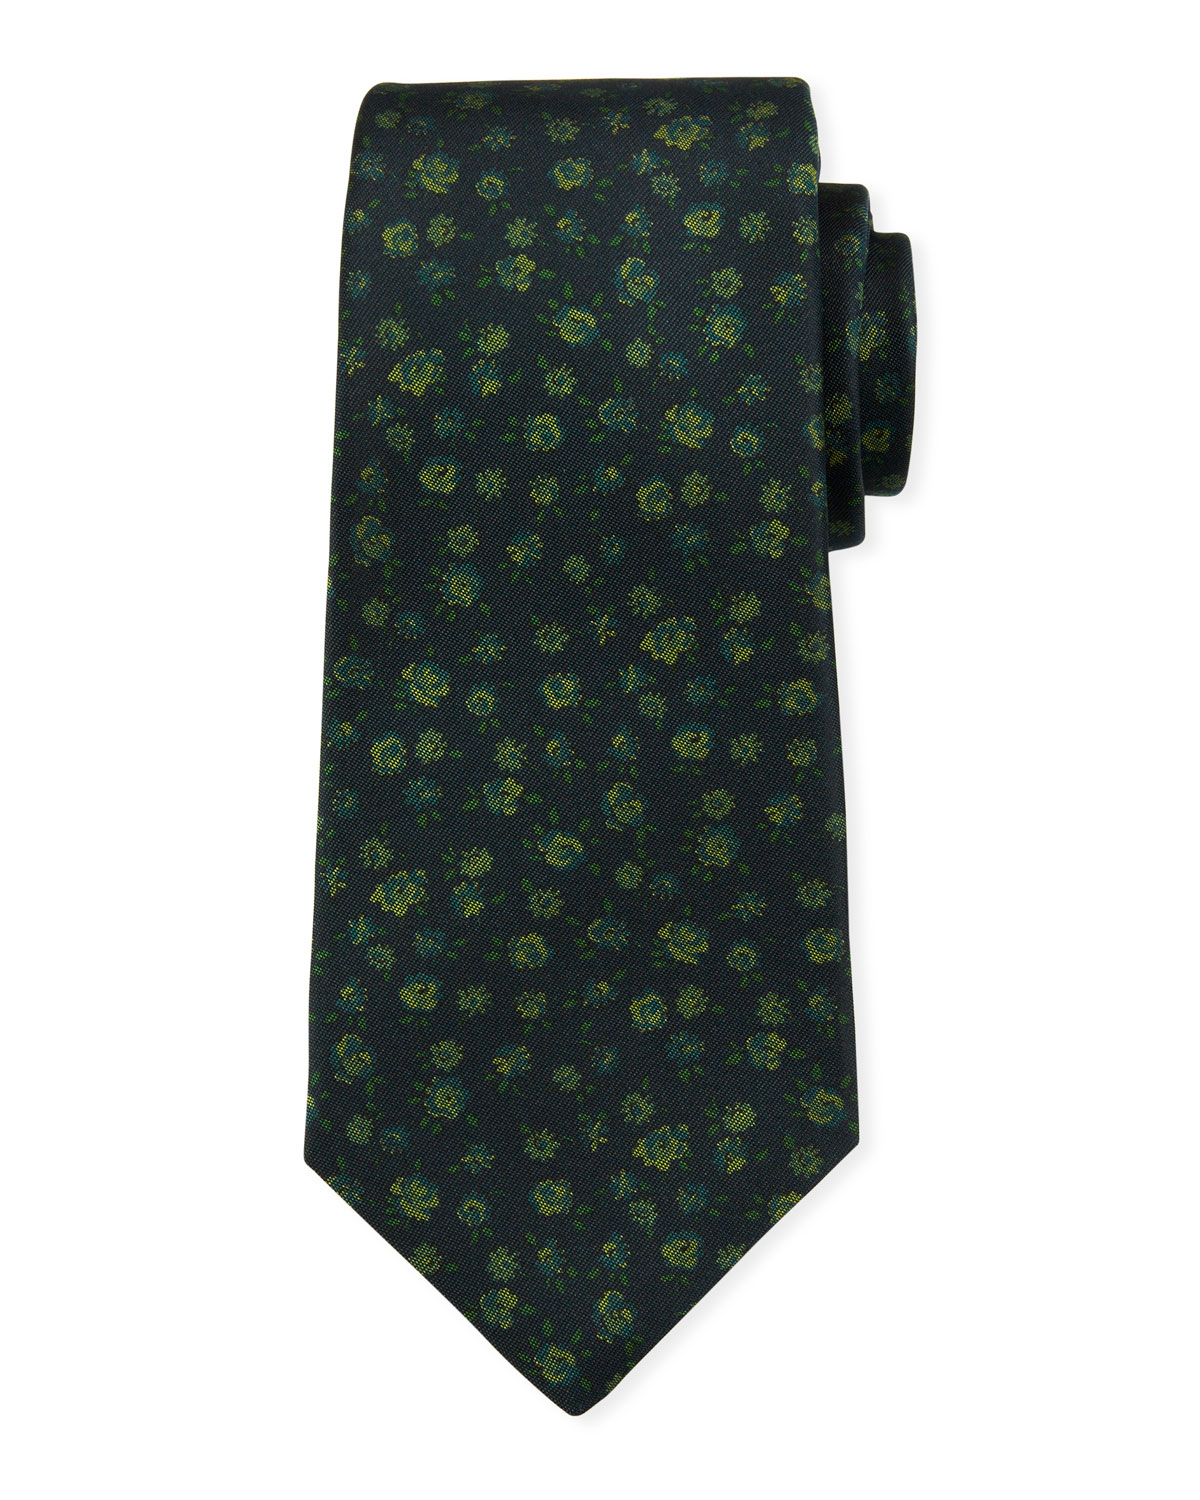 Kiton Ties MEN'S MINI FLORAL SILK TIE